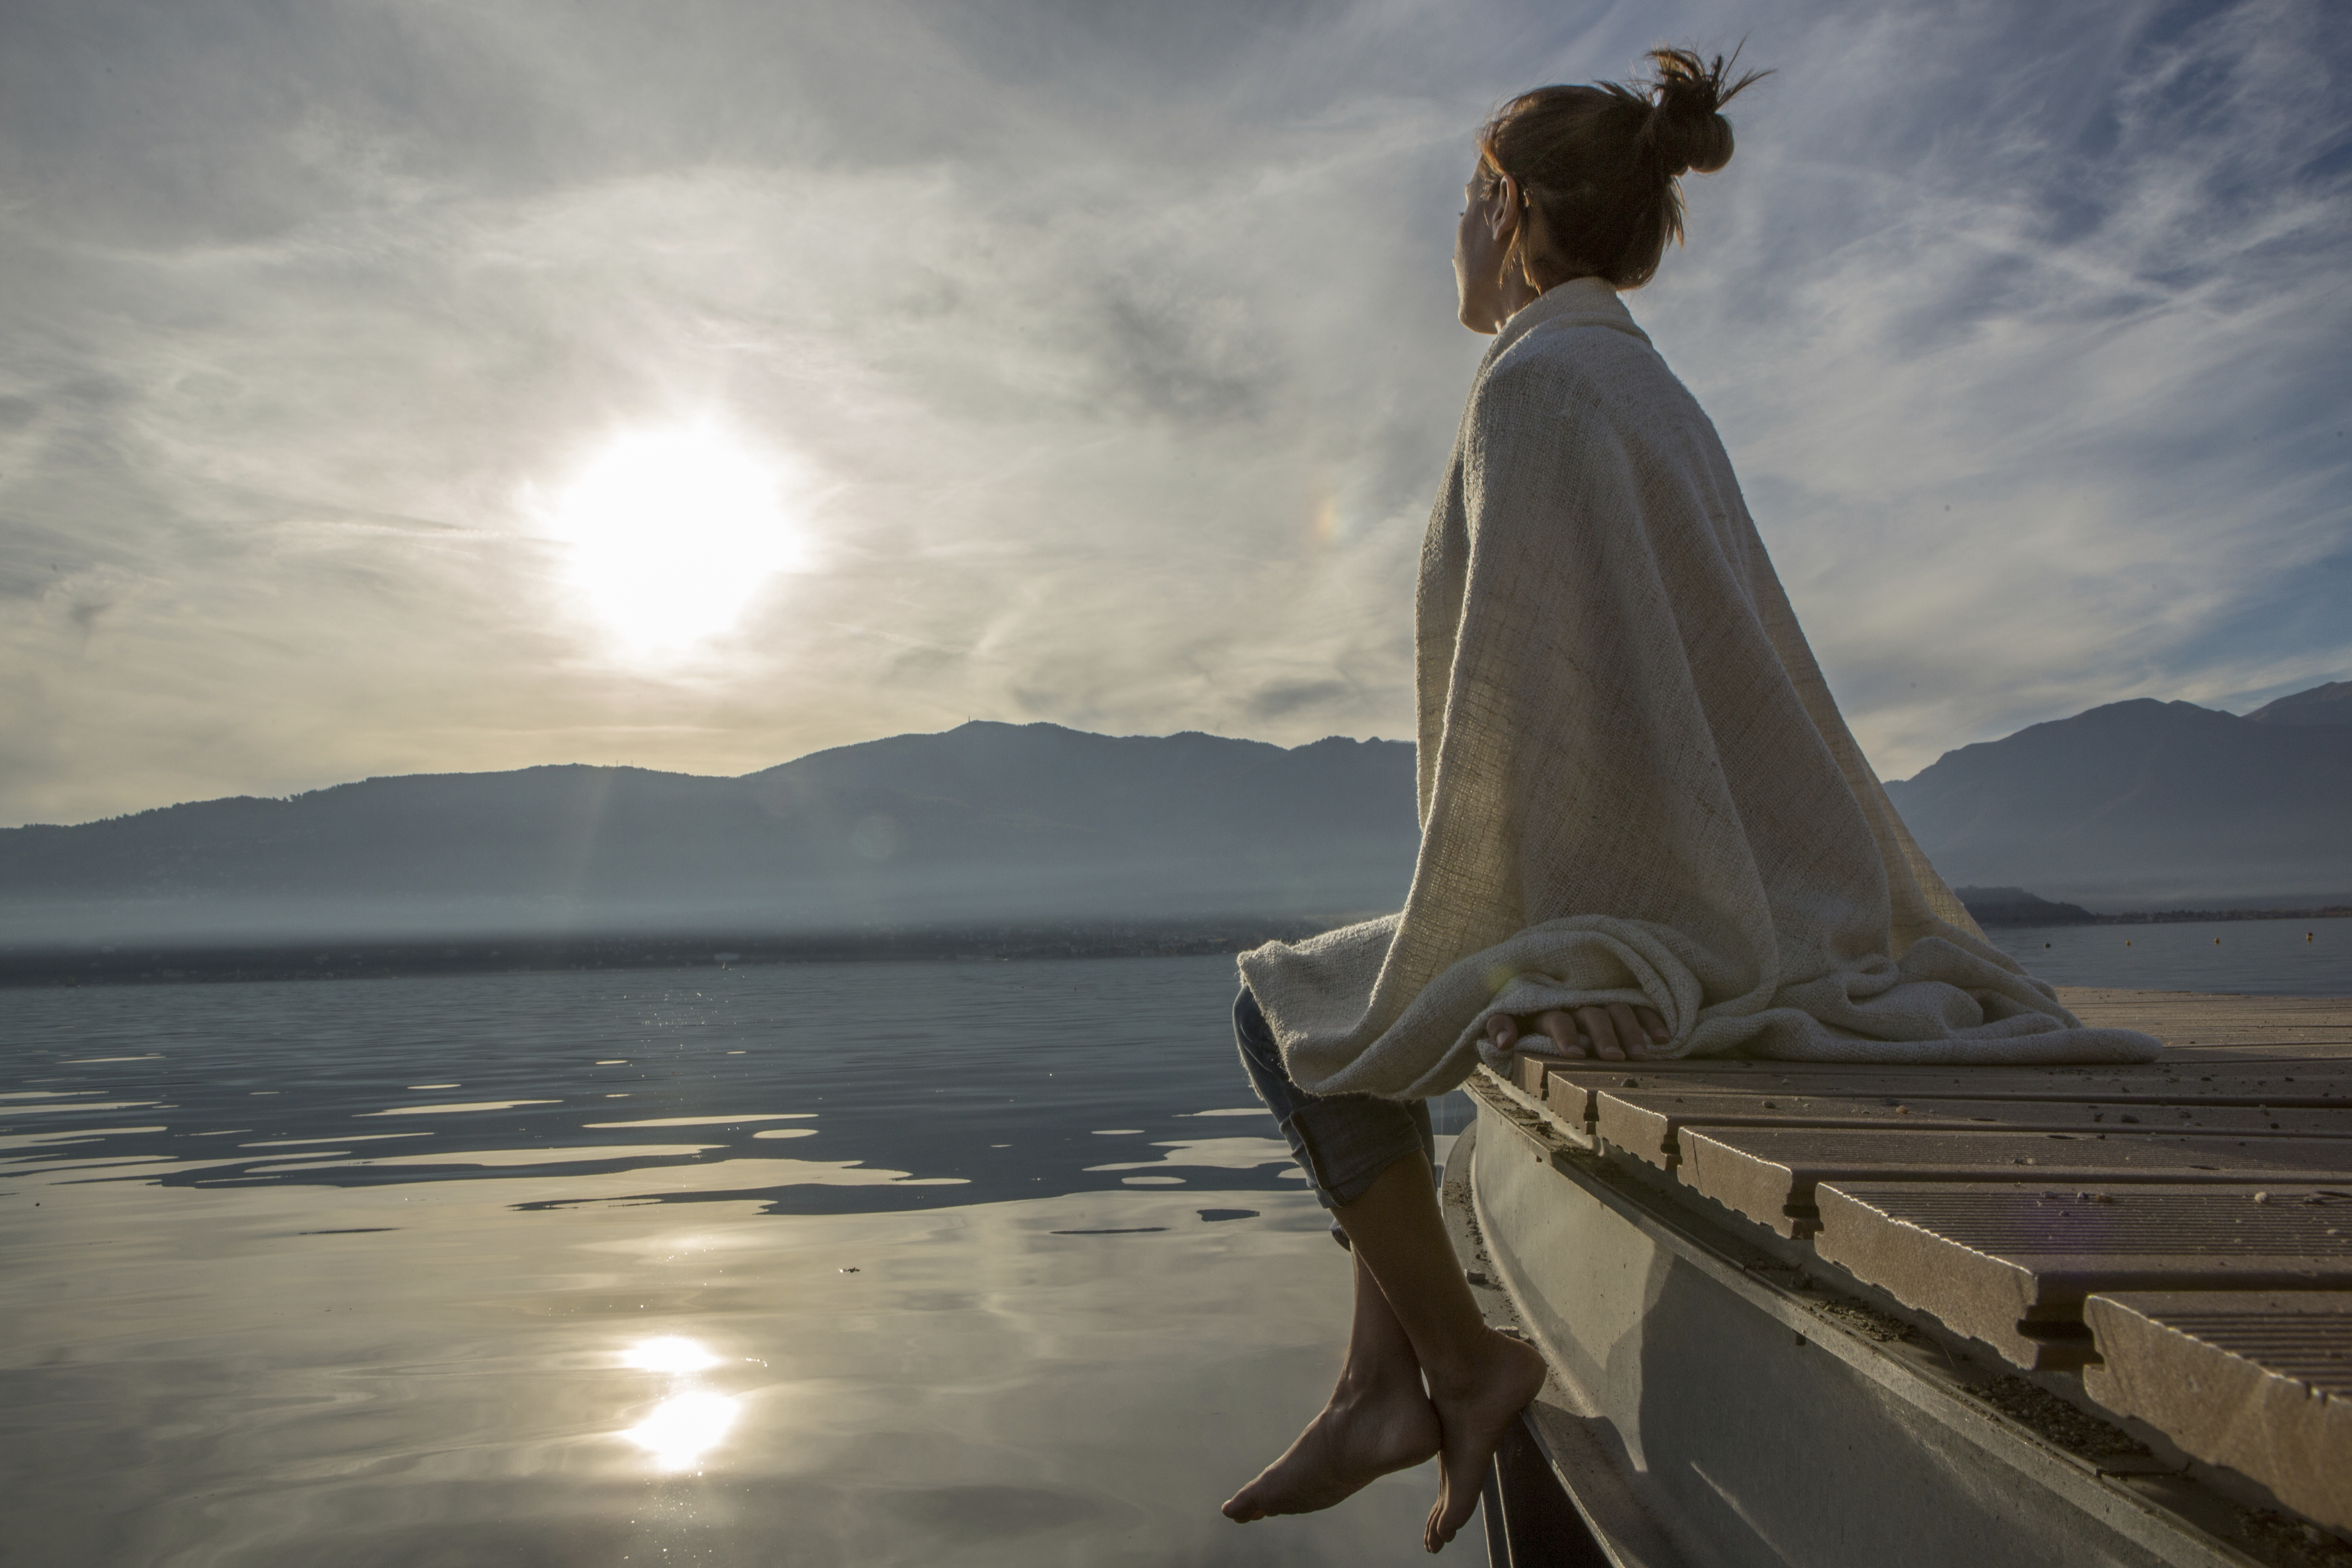 a contemplative scene of a young woman gazing out over a lake